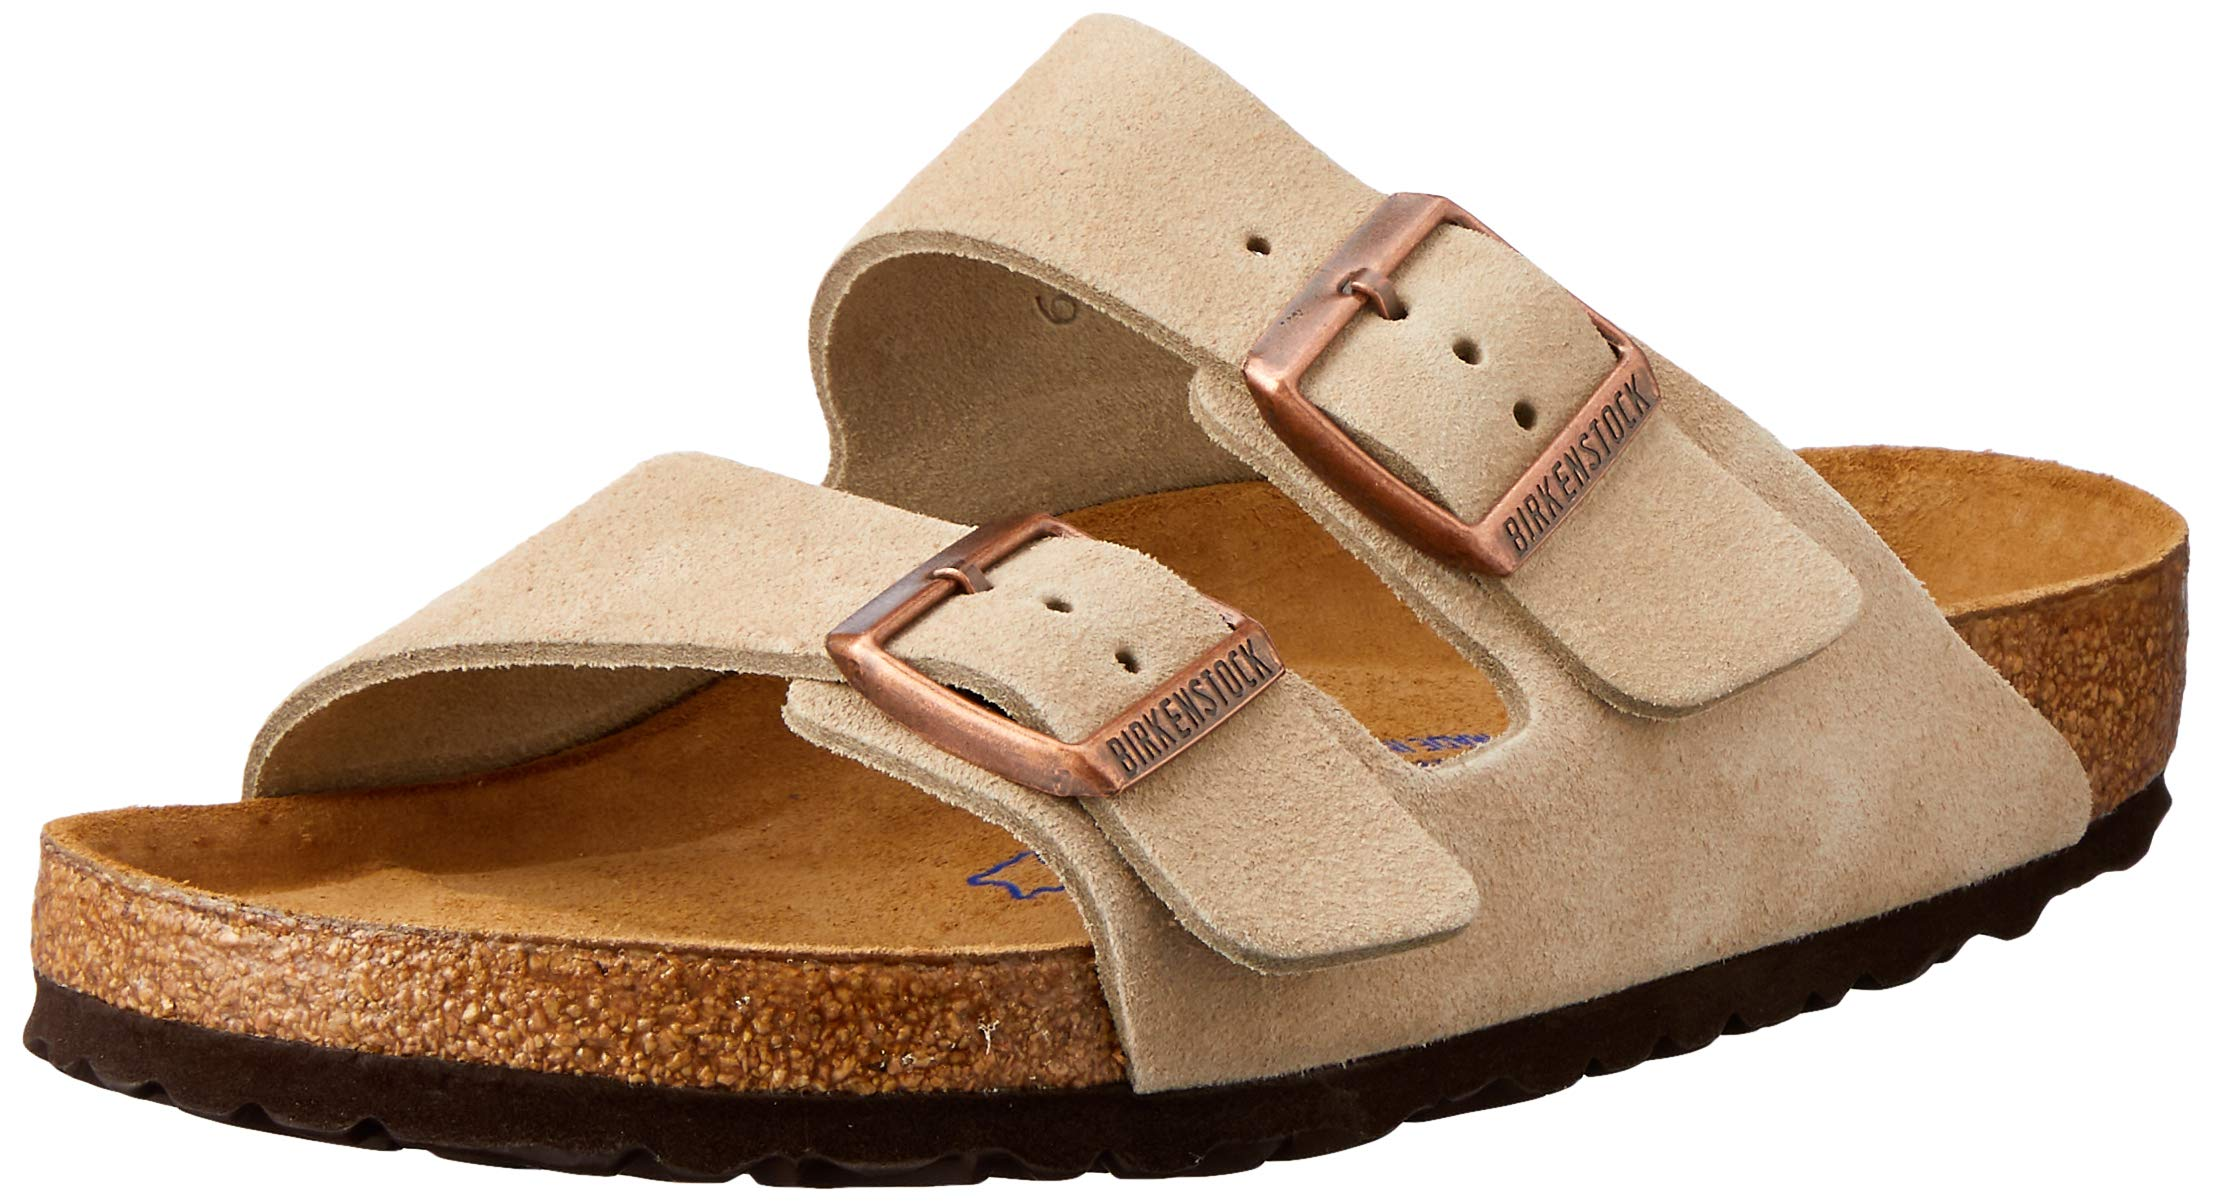 Birkenstock Arizona Suede Leather Sandals - Soft Footbed, Color:Taupe;Size:43 M EU